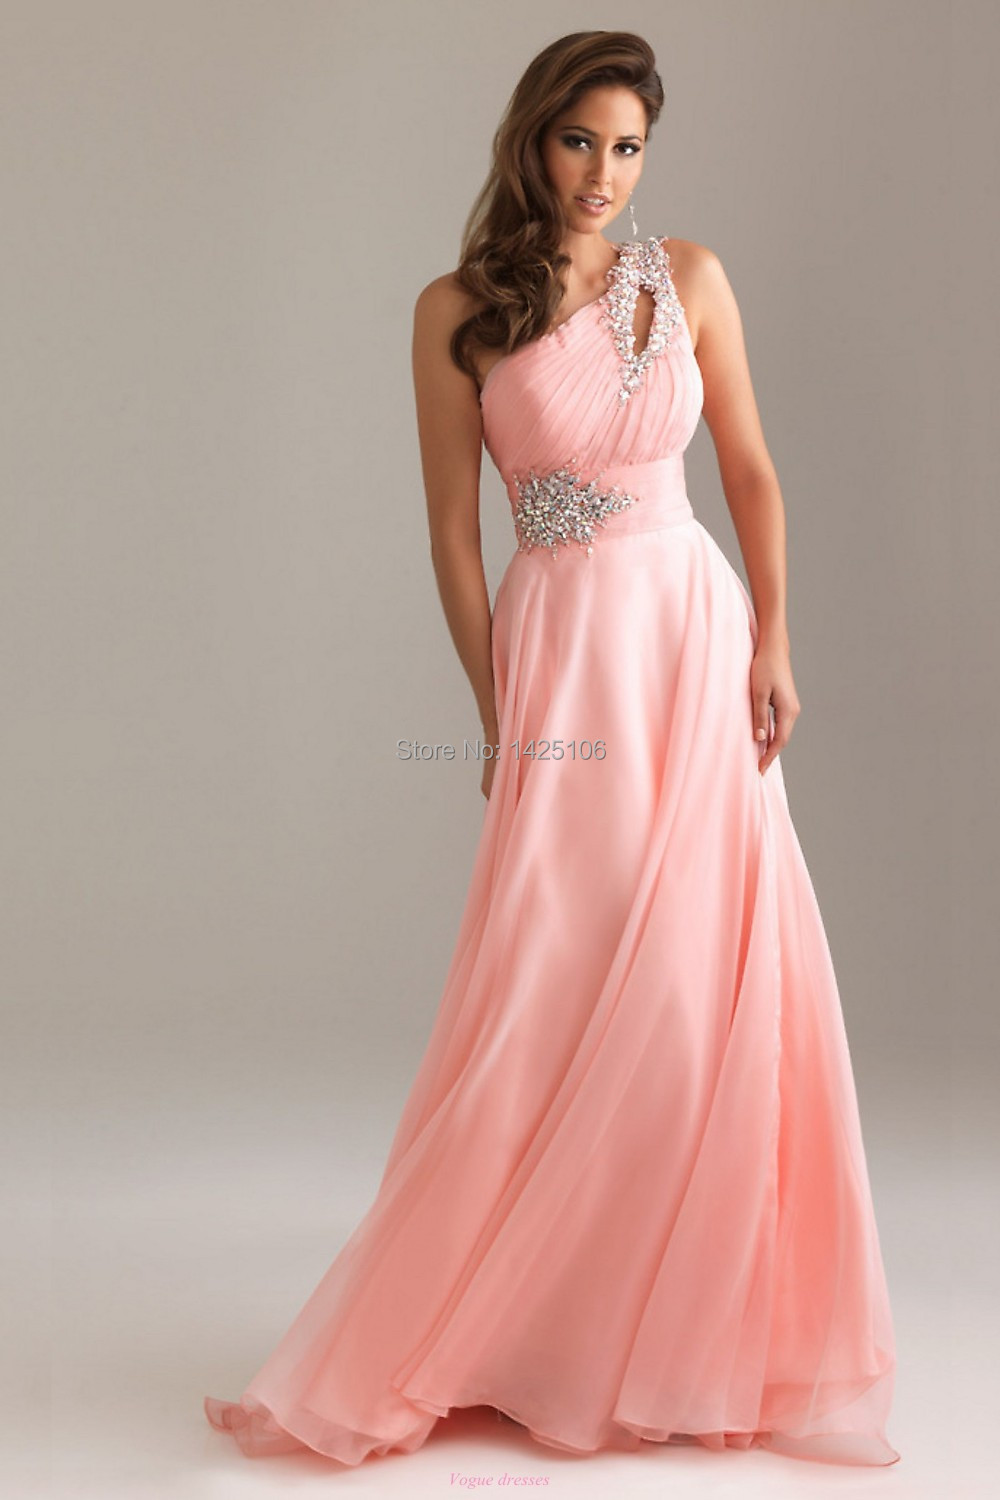 Compare prices on one shoulder bridesmaid dresses with sequin pink 2016 new senior handmade beadingsequins pinklavender one shoulder formal bridesmaid dress for women party ombrellifo Images